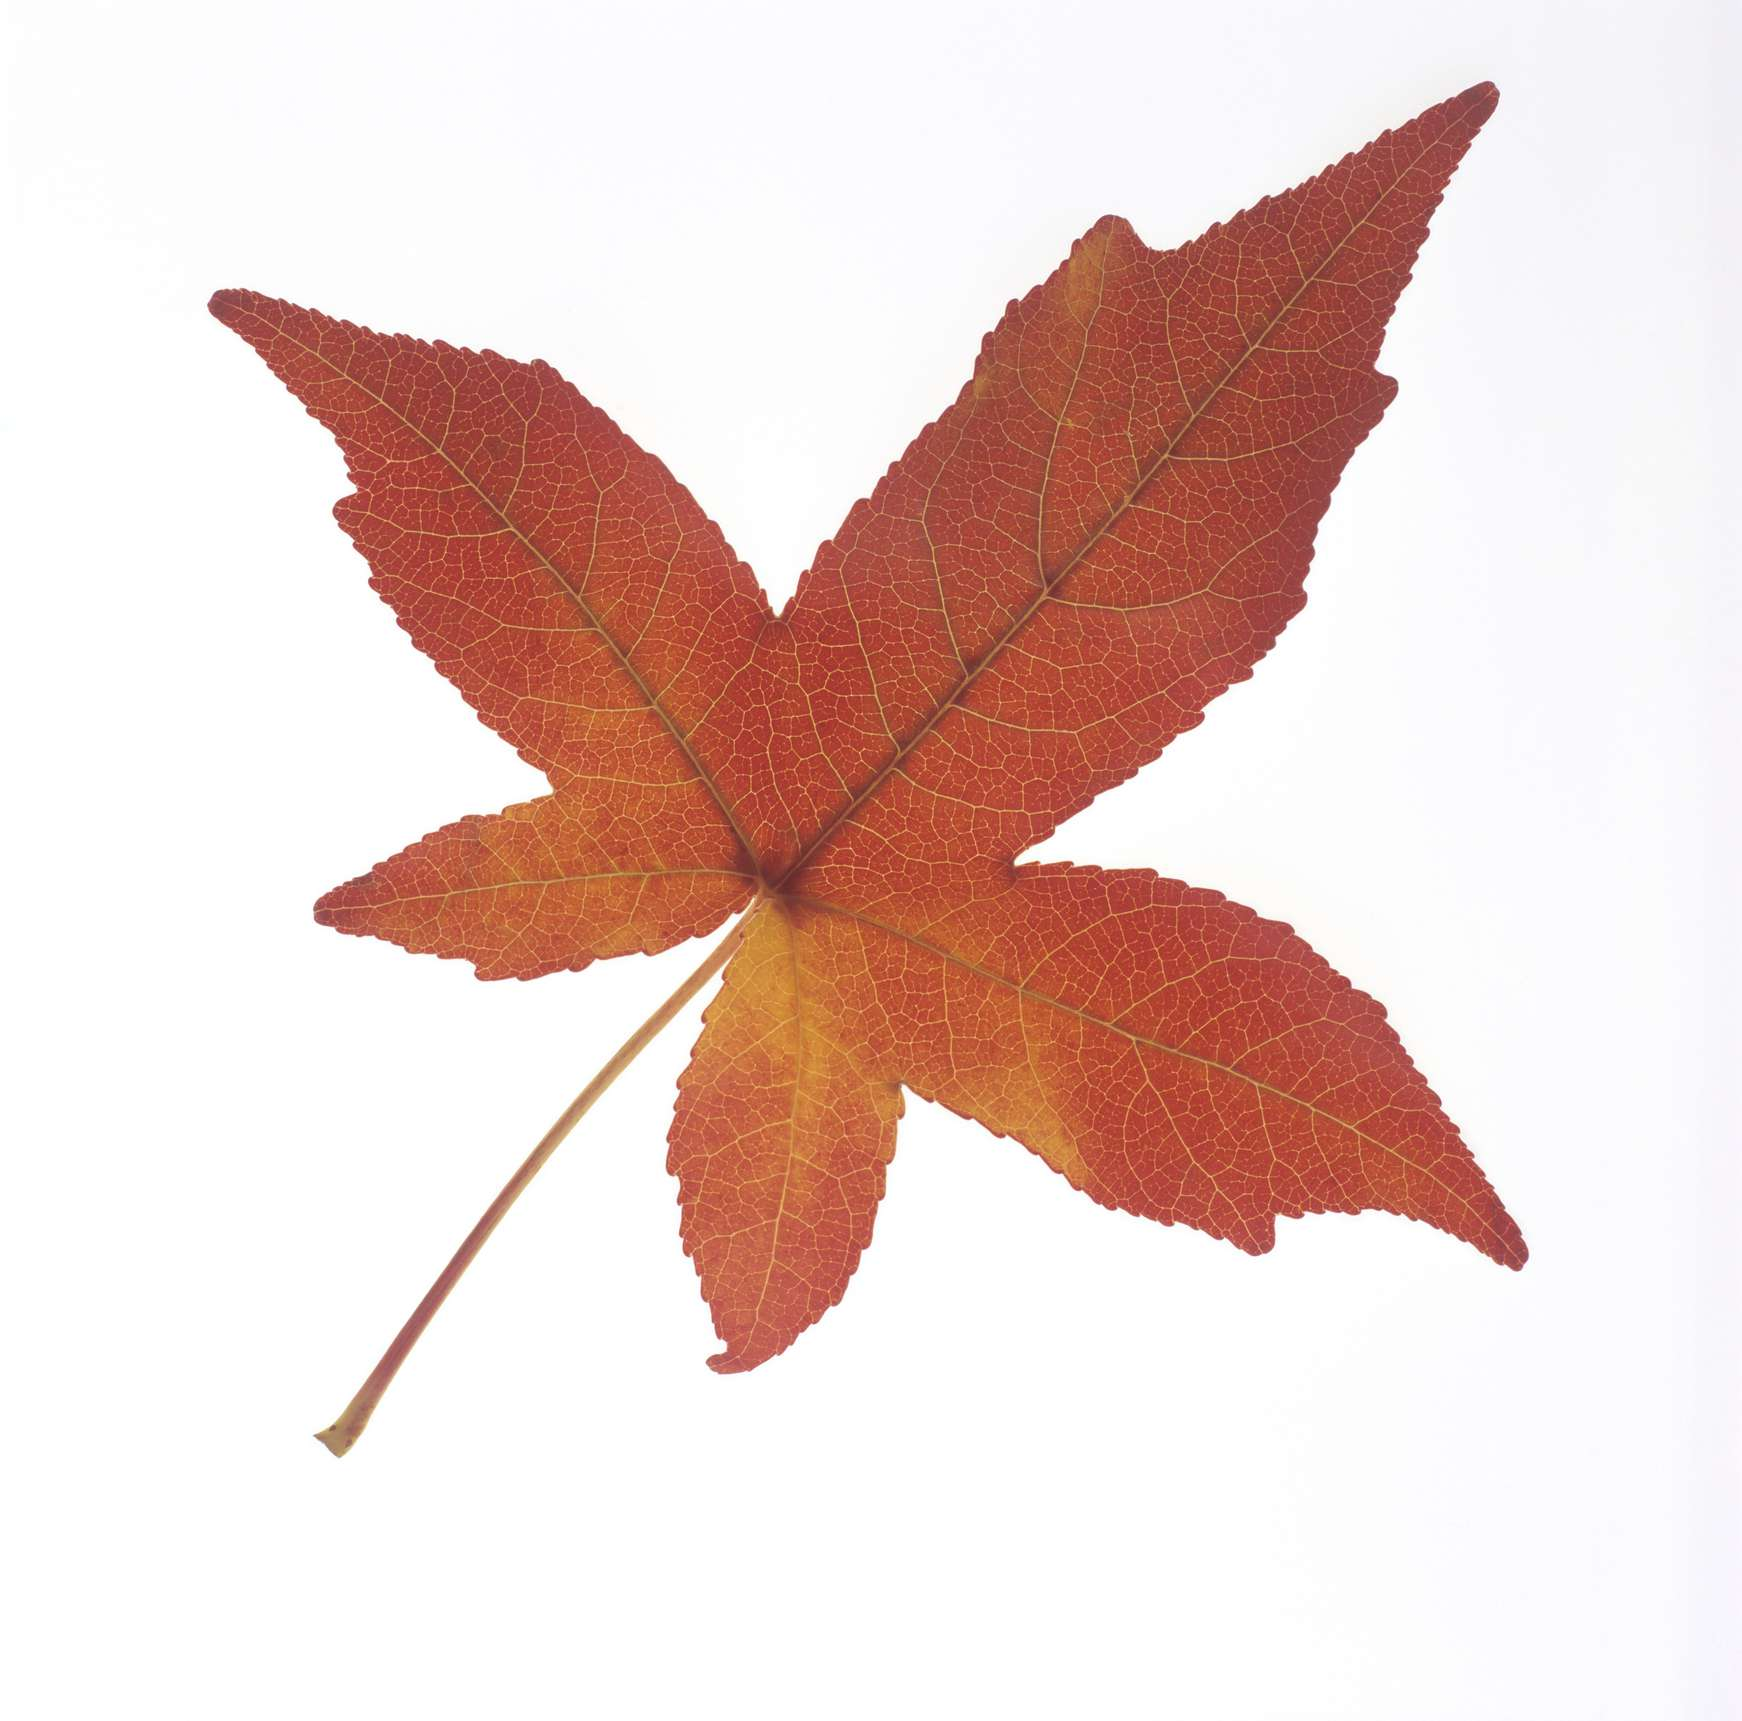 ID Maple, Sycamore, Yellow-Poplar and Sweetgum Leaves